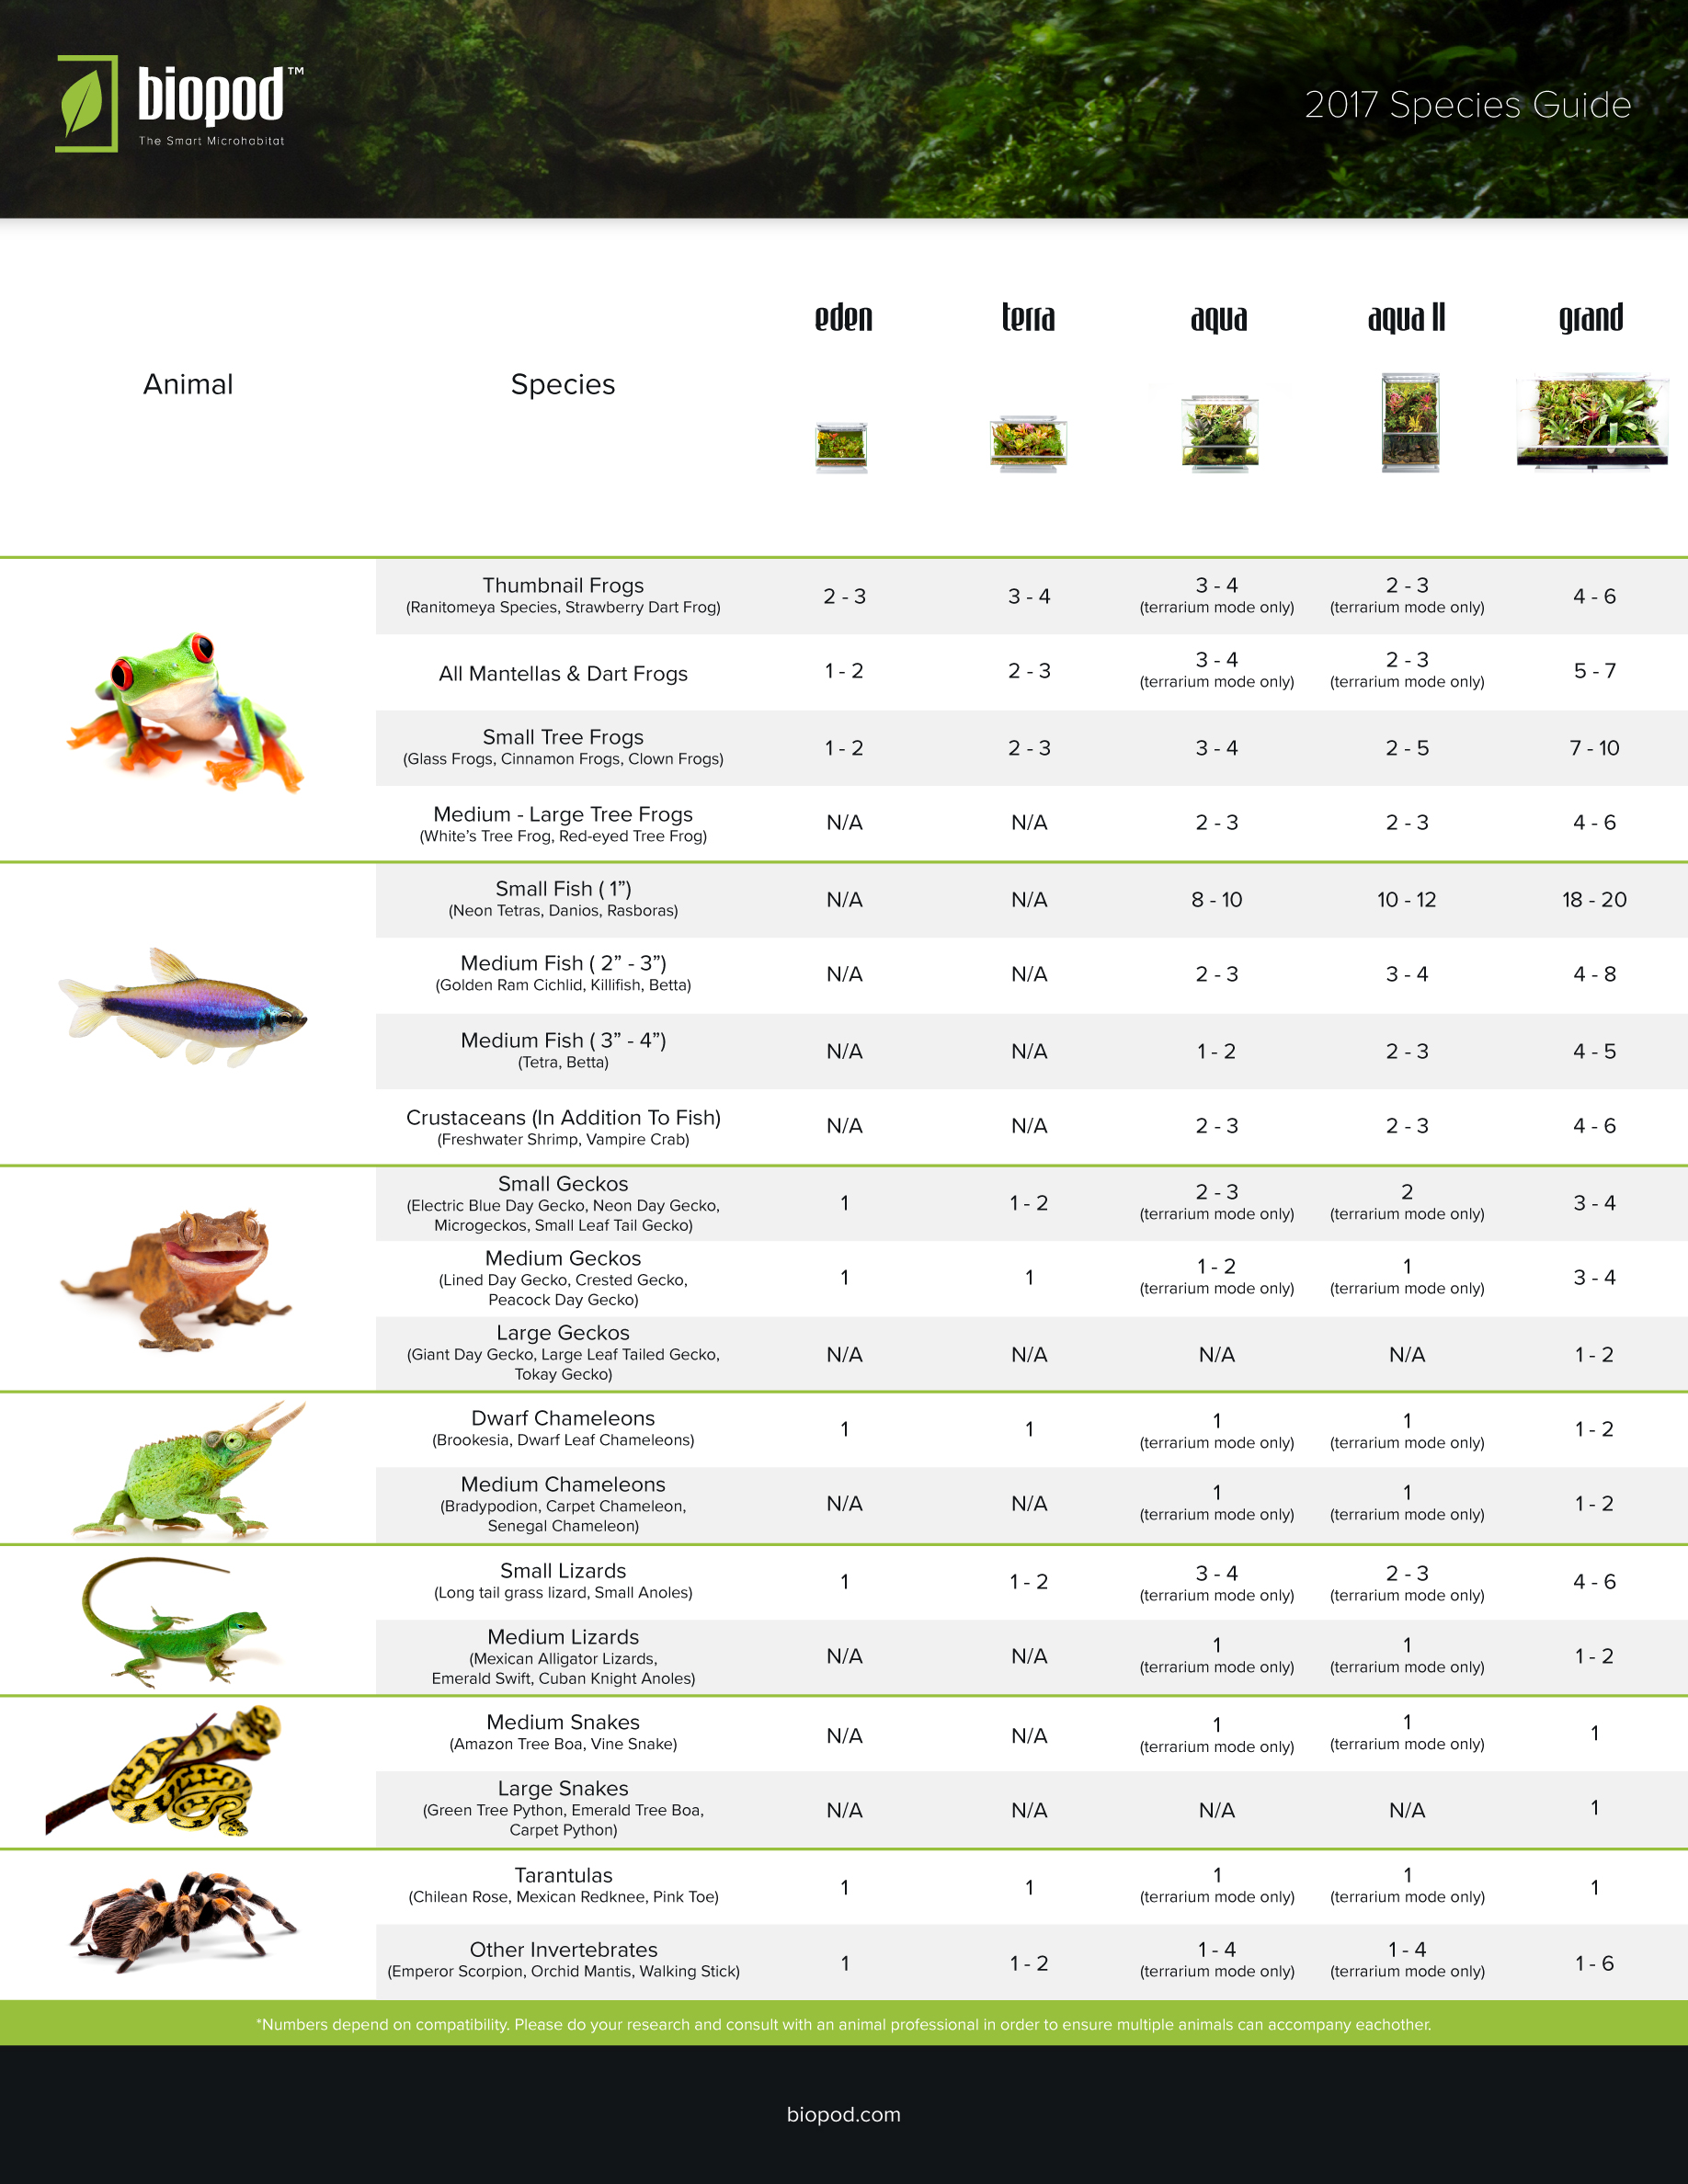 Biopod_Species_Guide_2017_v01